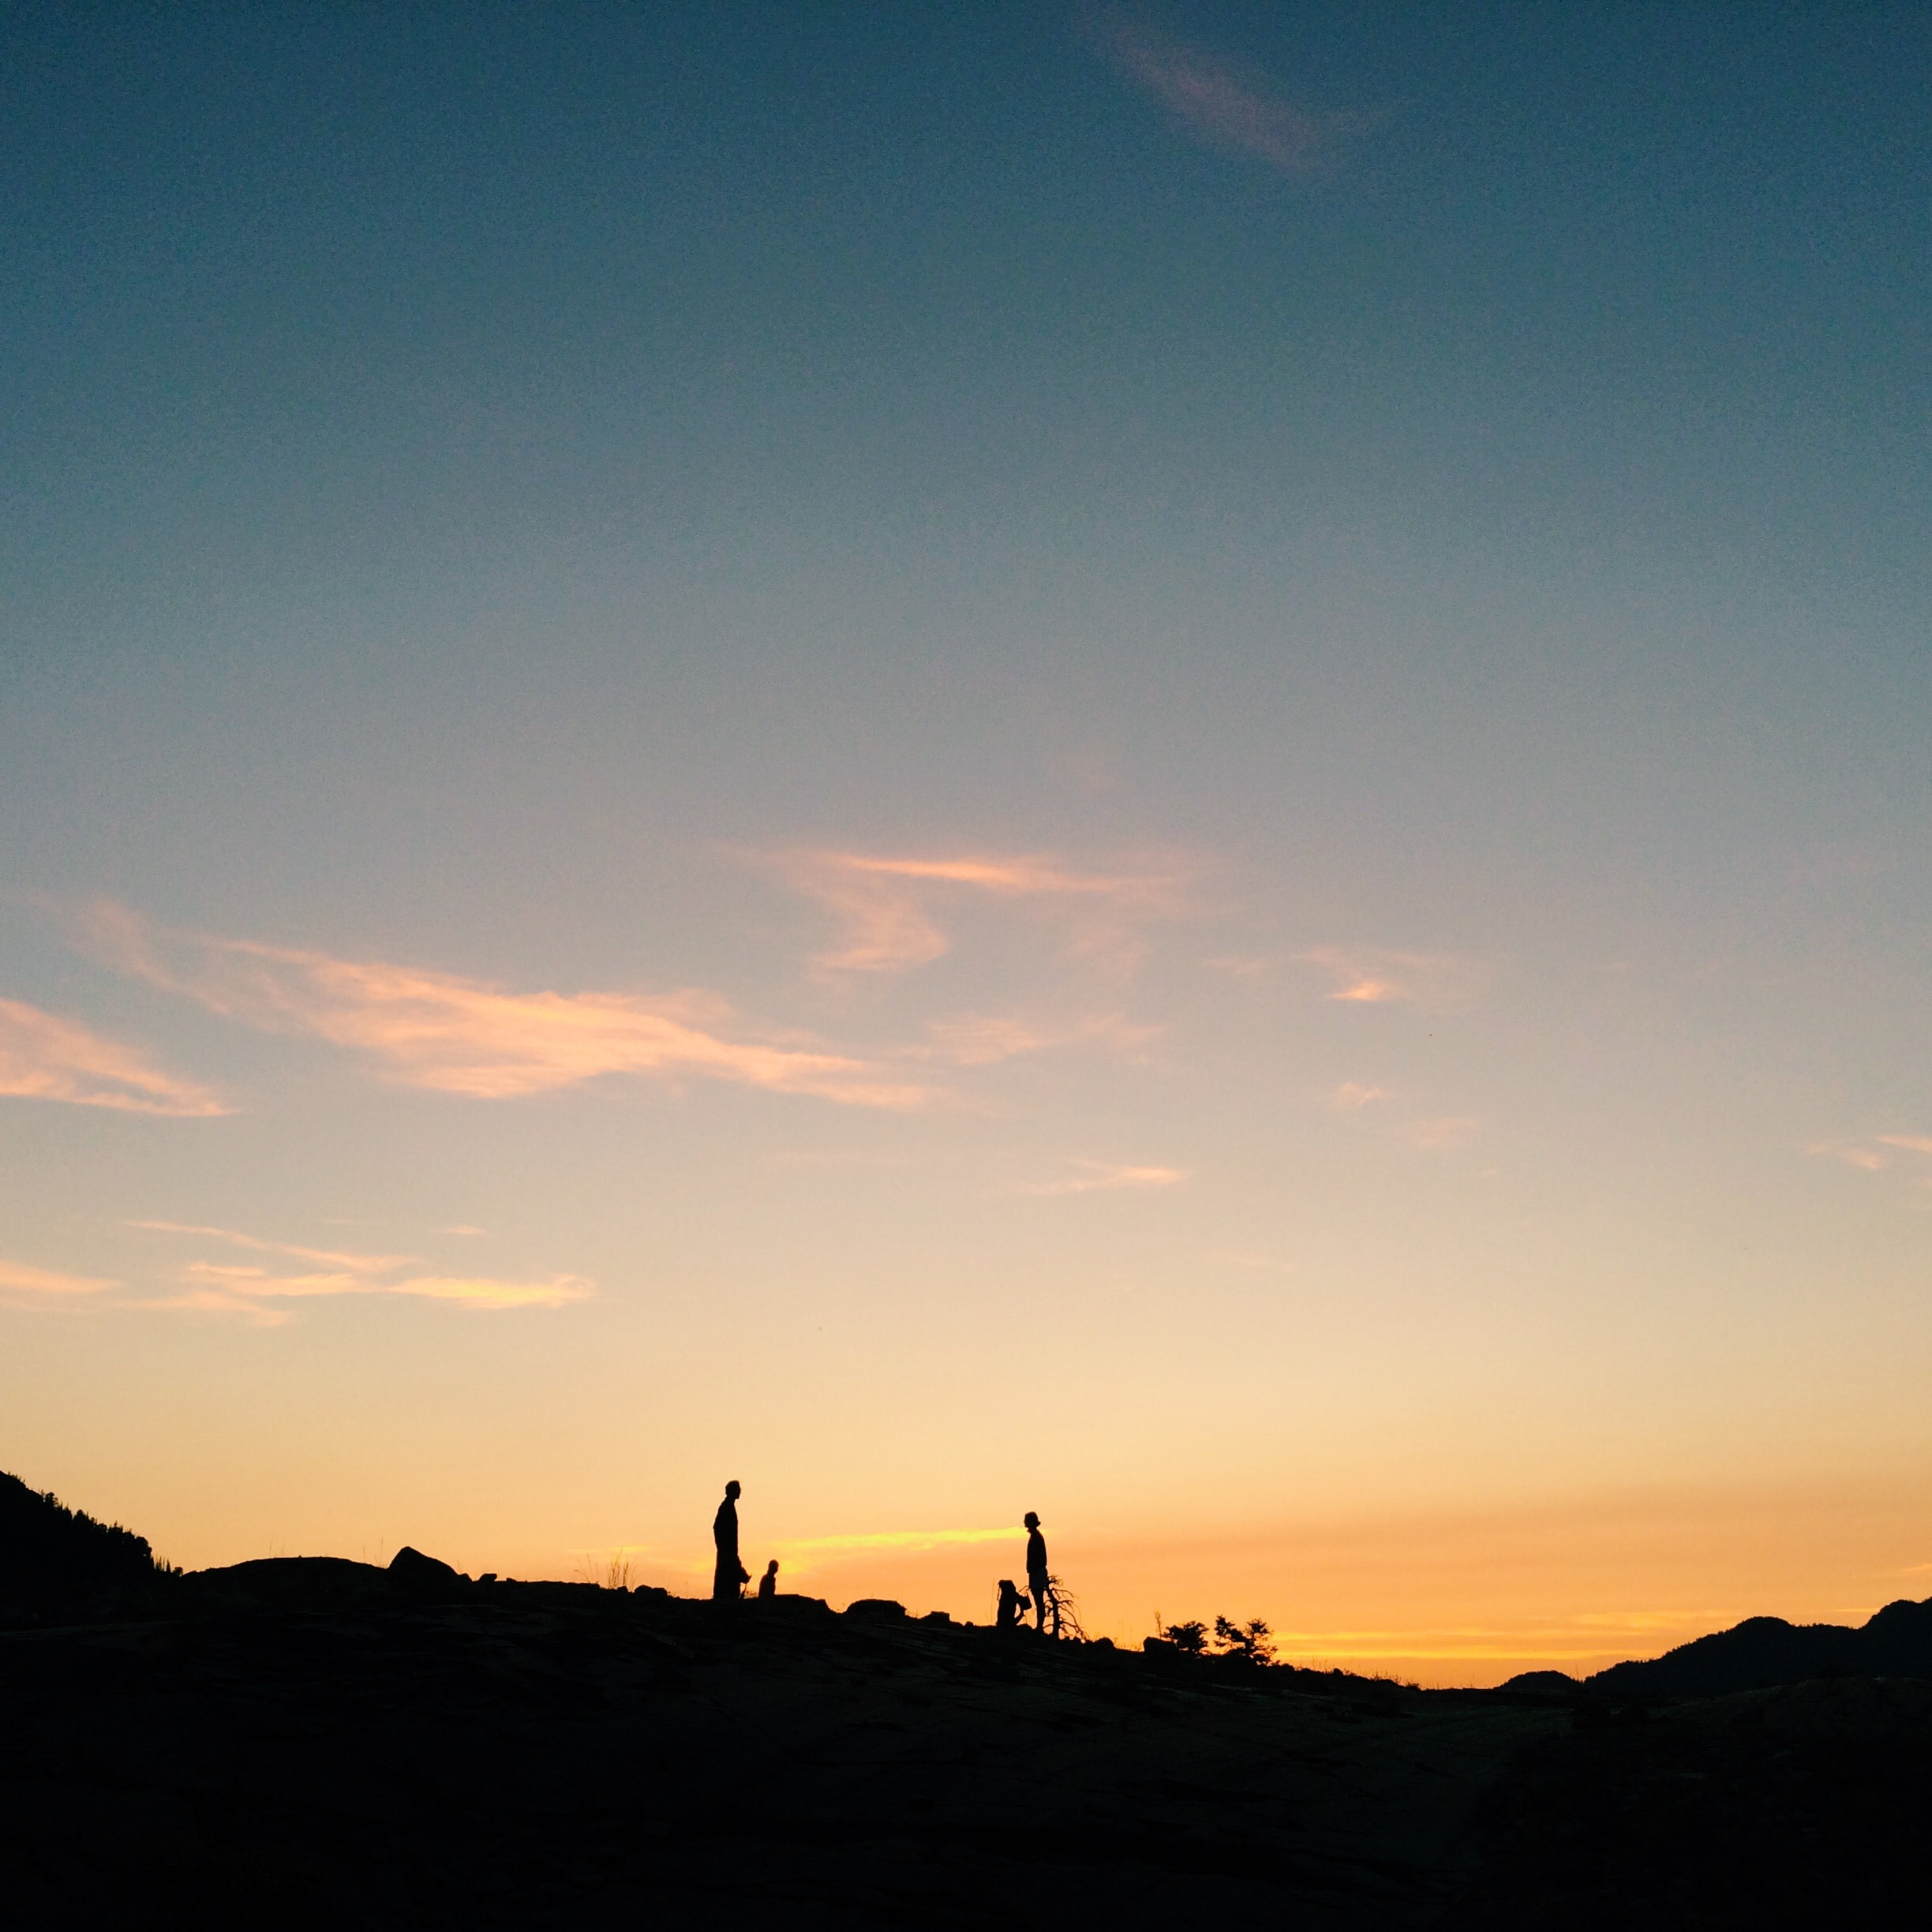 Two people in silhouette on a hill against a gold and blue sunset at Lake Blanche.